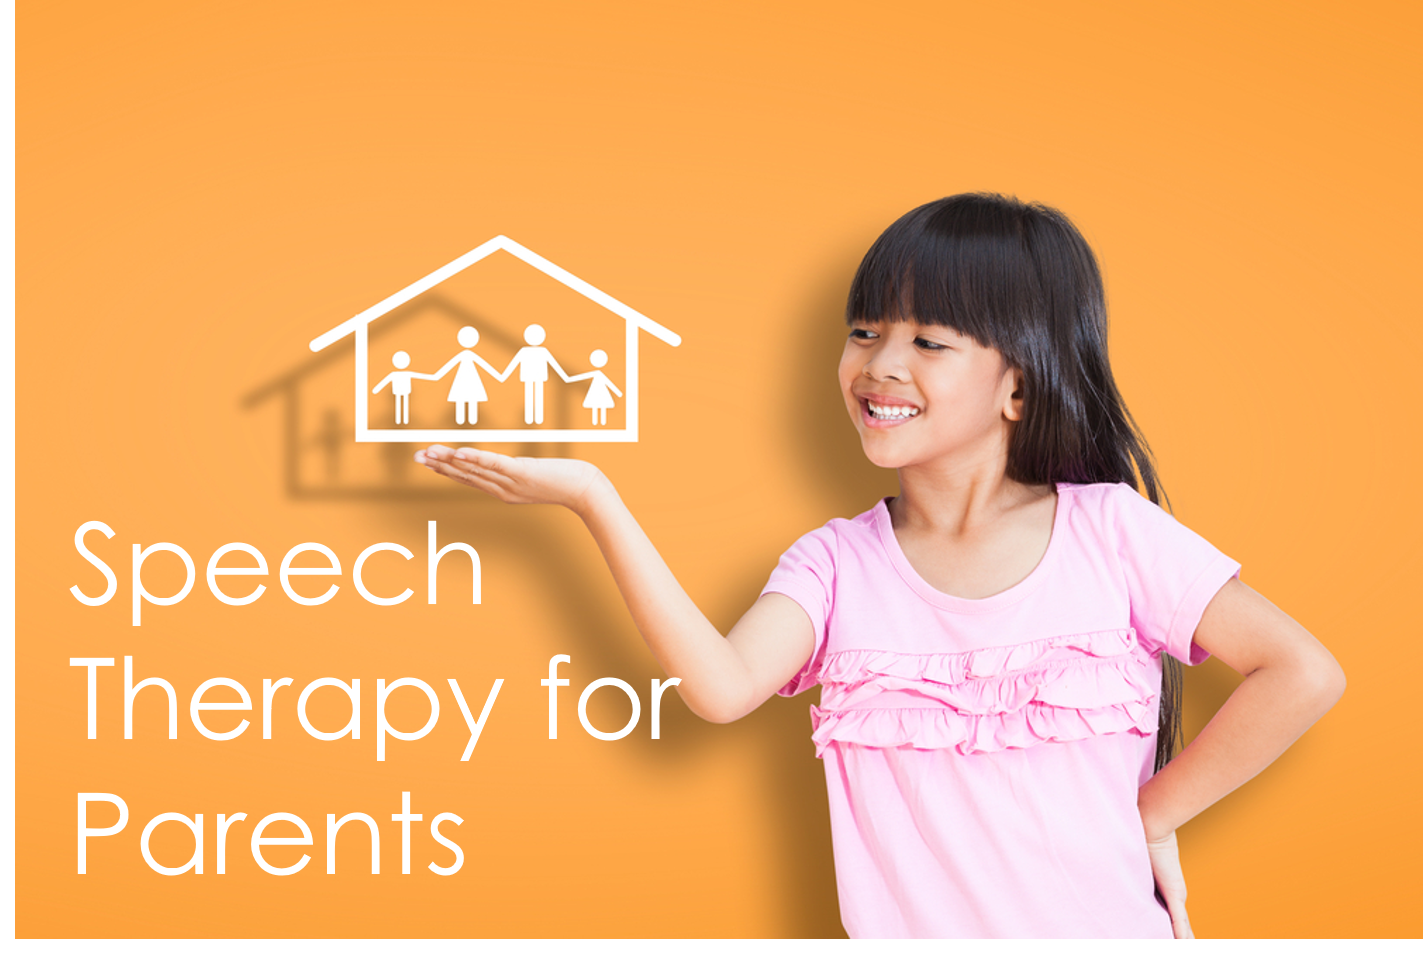 Speech Therapy for Parents